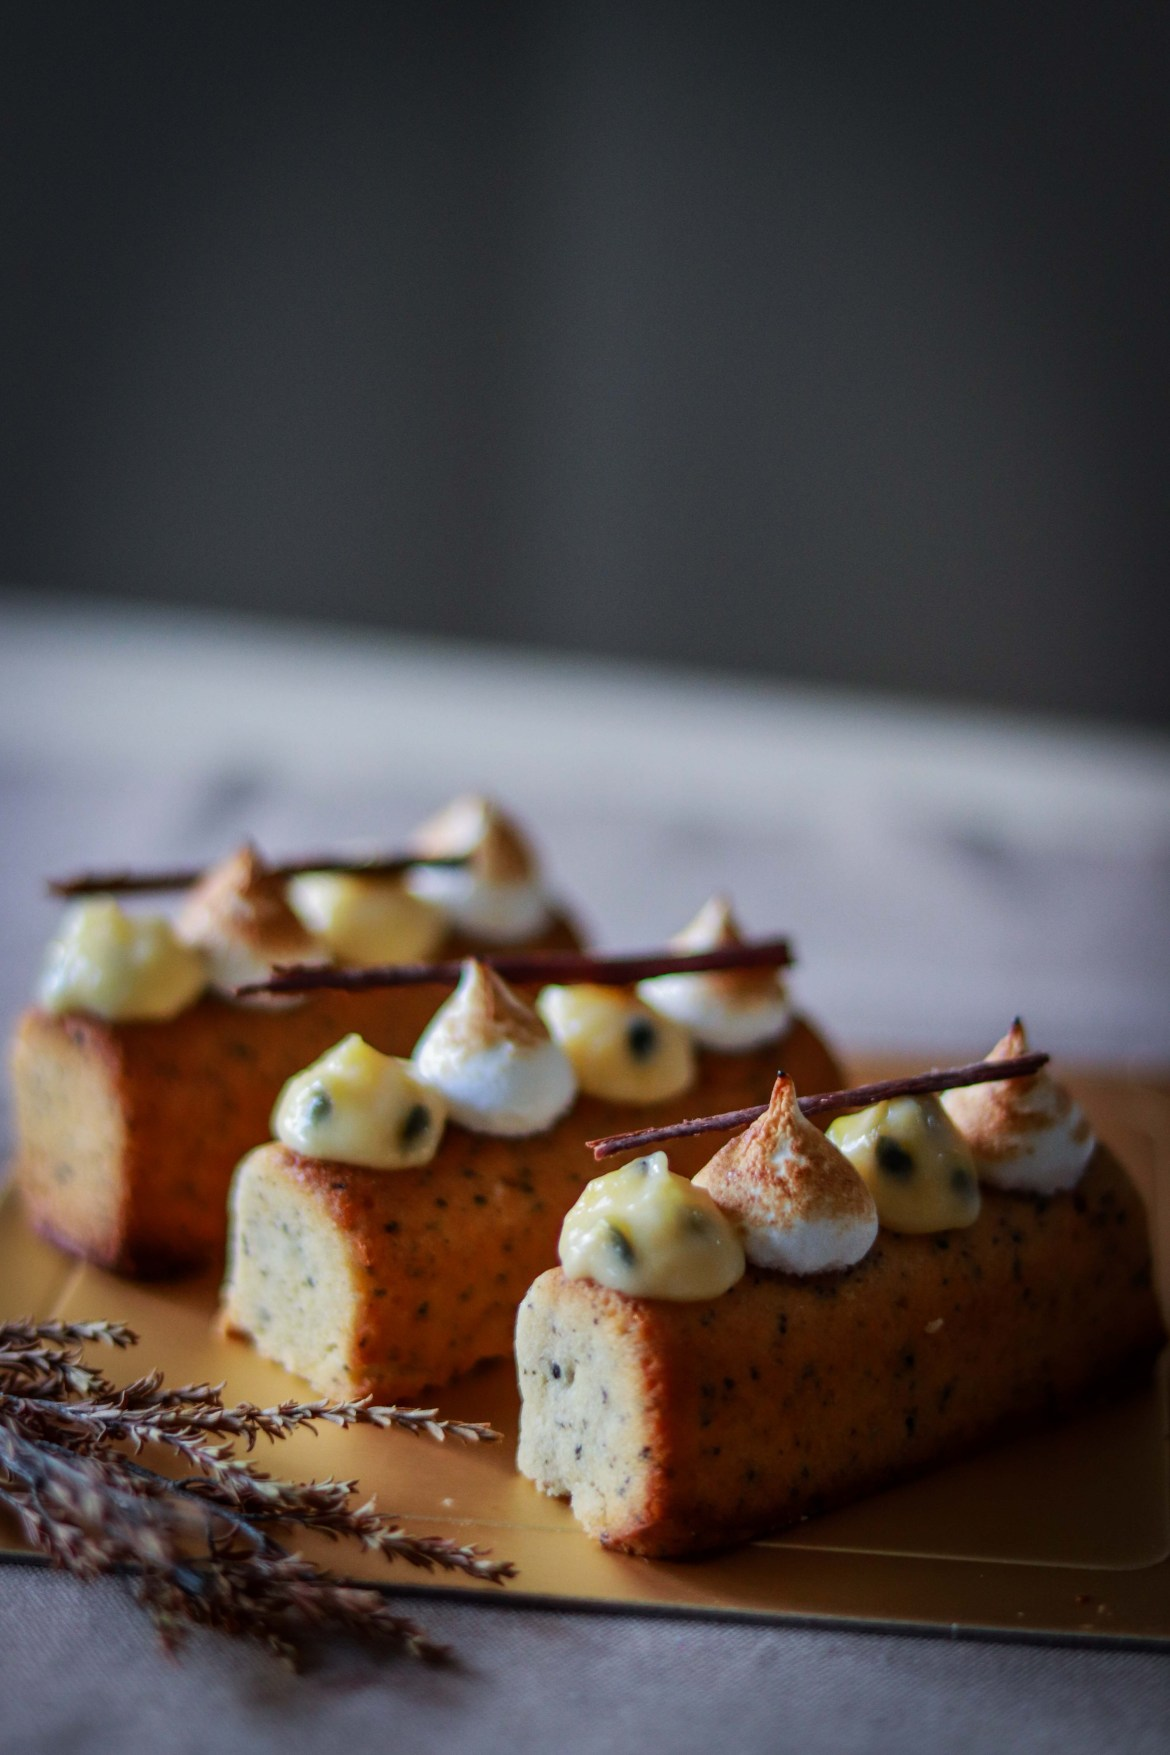 Earl_Grey_Cake_with_Passionfruitcurd_and_Toasted_Meringue5